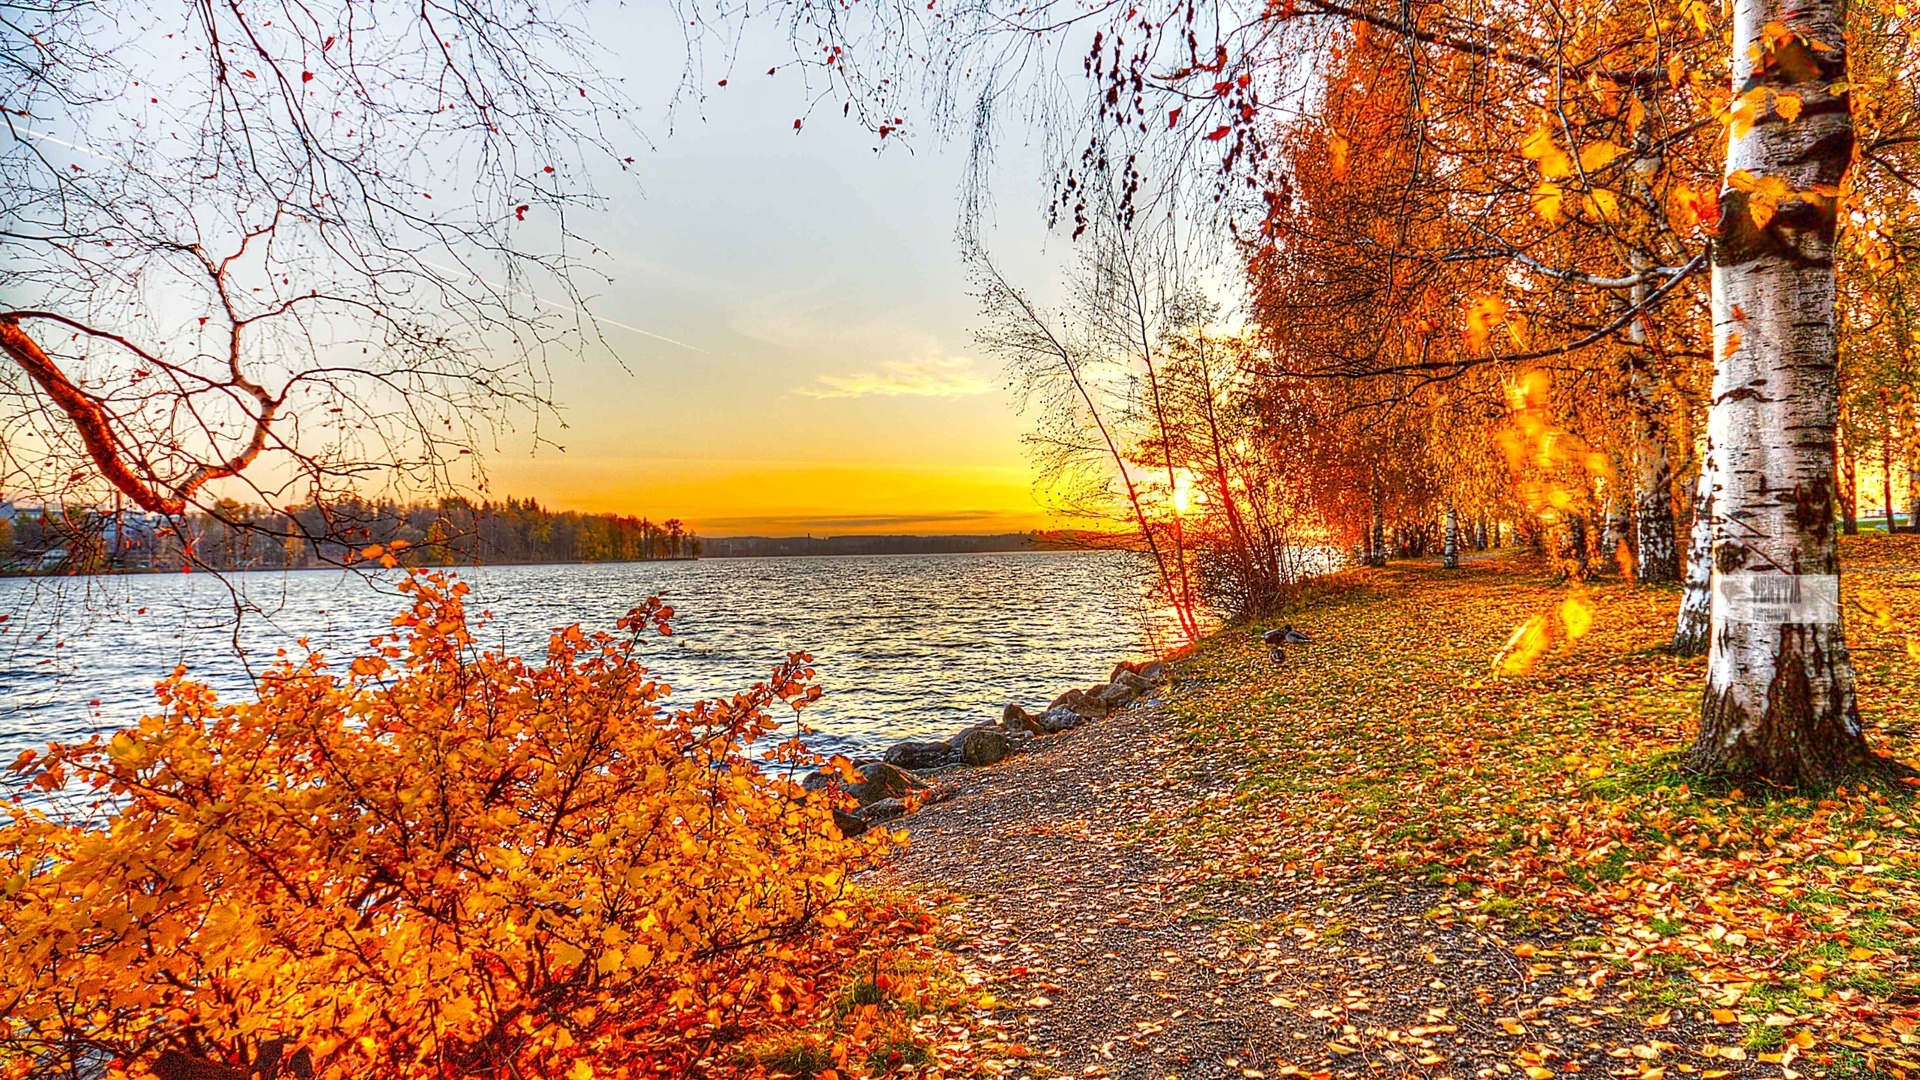 10 Best Beautiful Fall Pictures Wallpaper FULL HD 1080p For PC Desktop